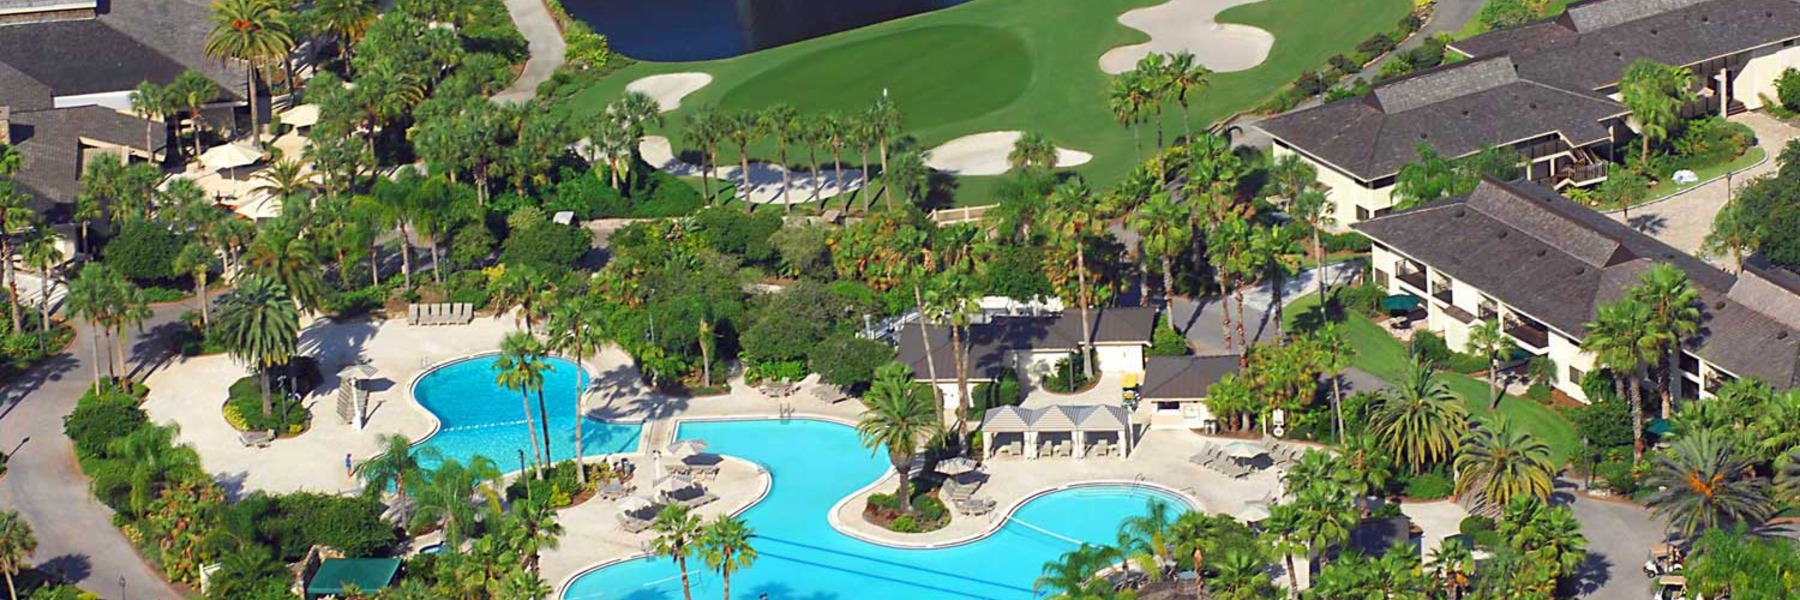 Golf Vacation Package - Saddlebrook Resort Golf Getaway for $277 per person, per day!